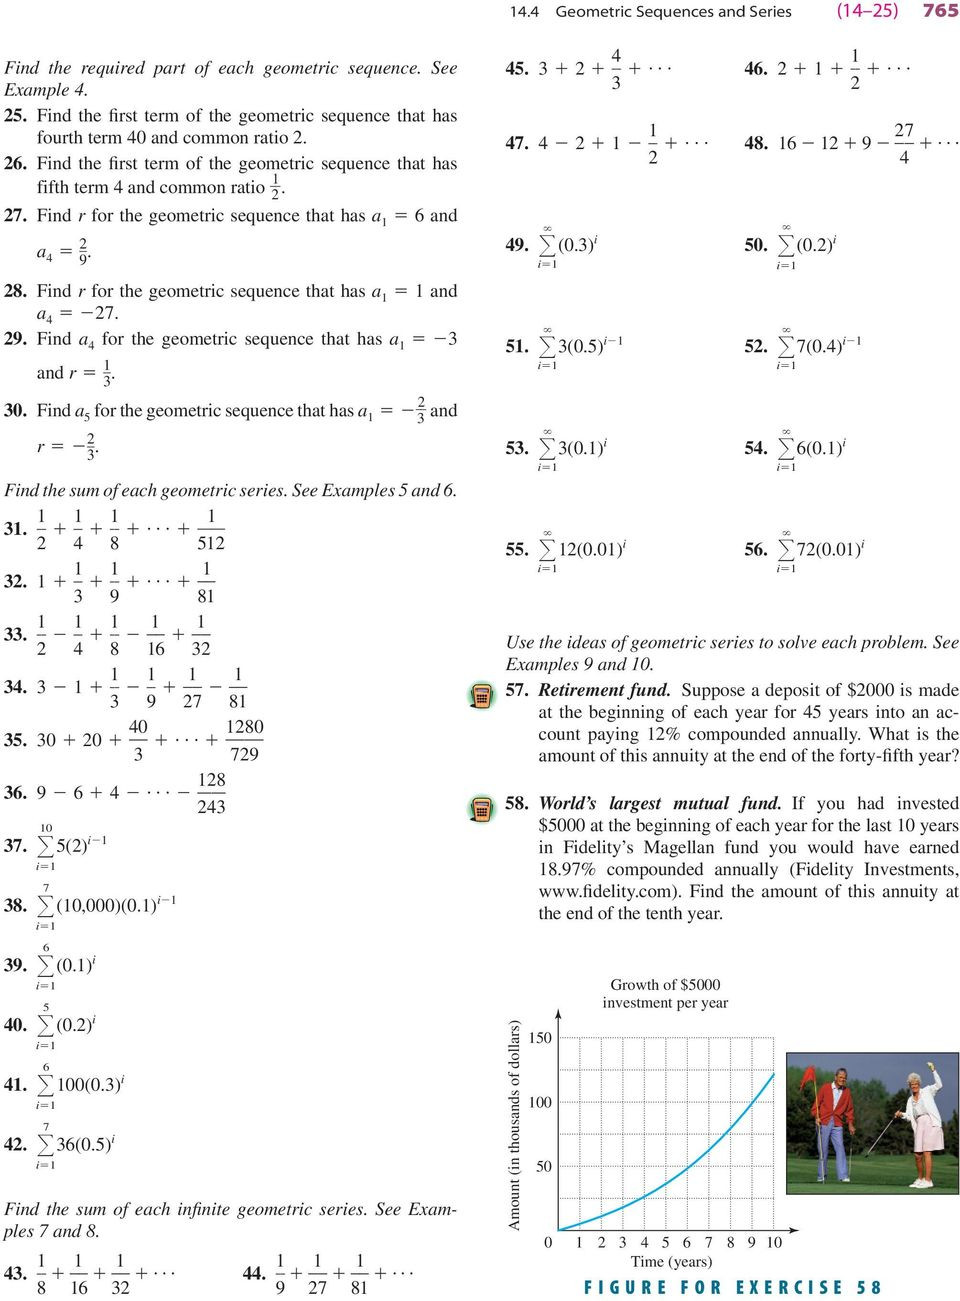 Geometric Sequence Worksheet Answers Geometric Sequences and Series Pdf Free Download